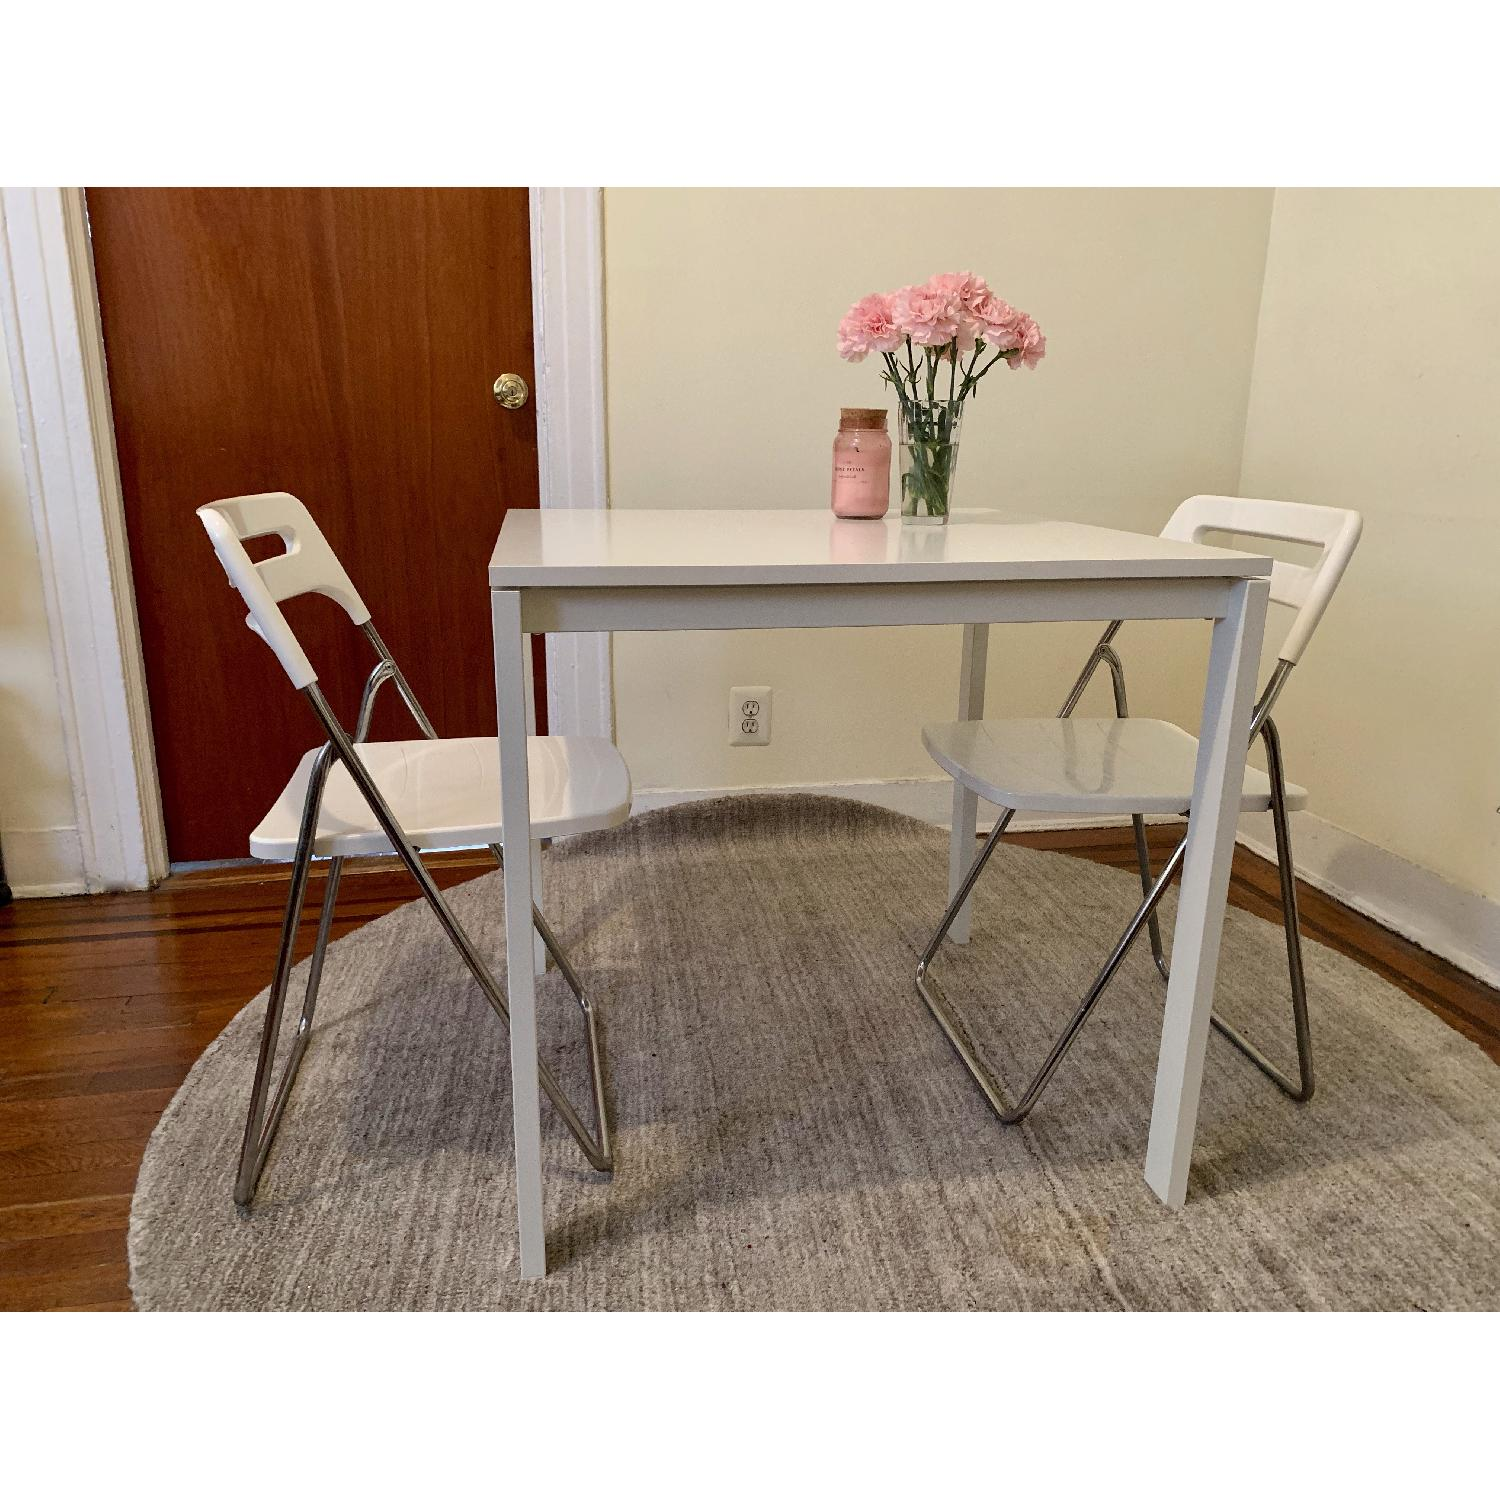 Ikea Square White Dining Table - image-3